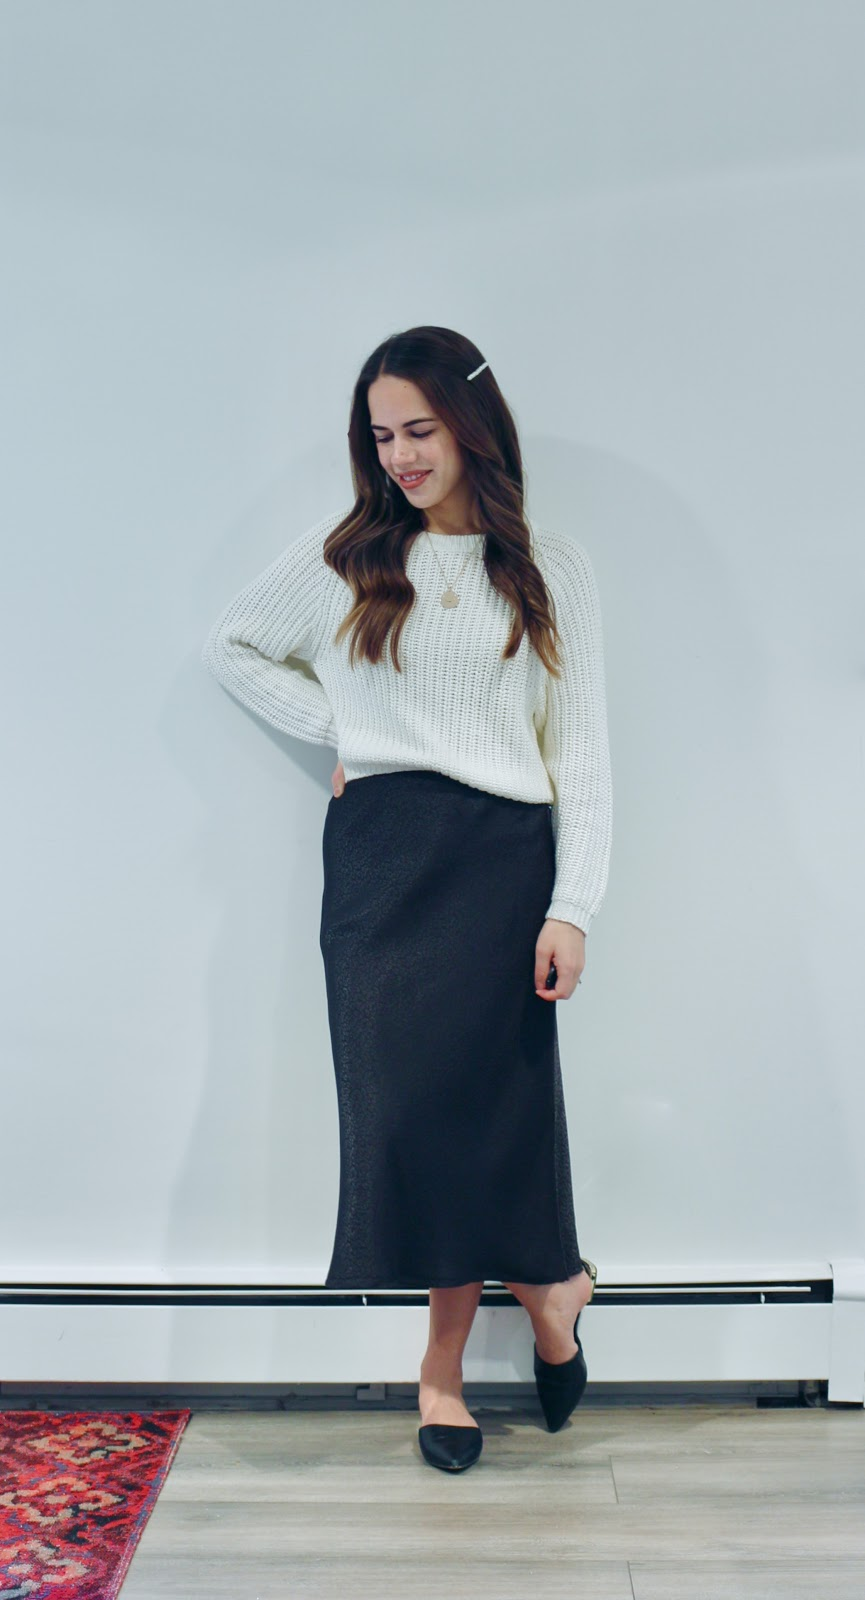 Jules in Flats - Jacquard Midi Skirt with Cropped Sweater (Business Casual Winter Workwear on a Budget)